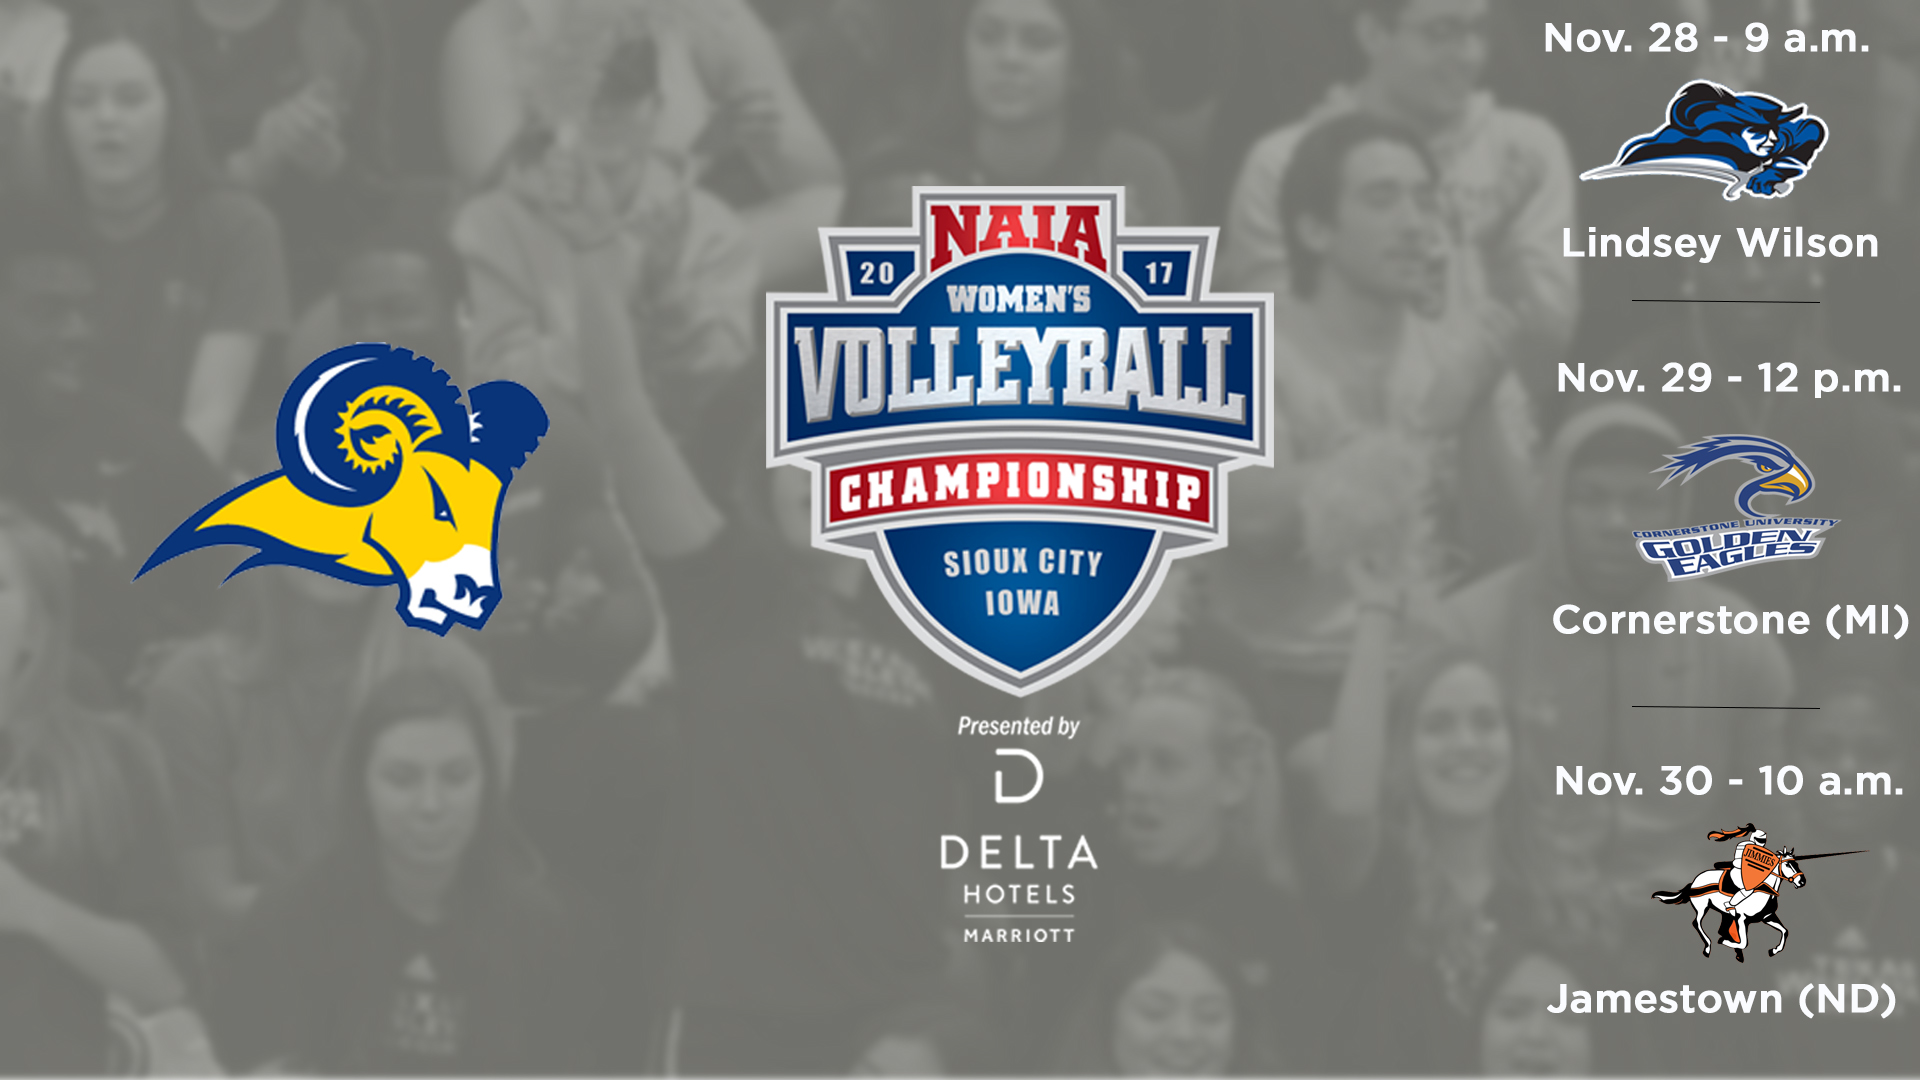 Pool Play Schedule Announced For 2017 NAIA Women's